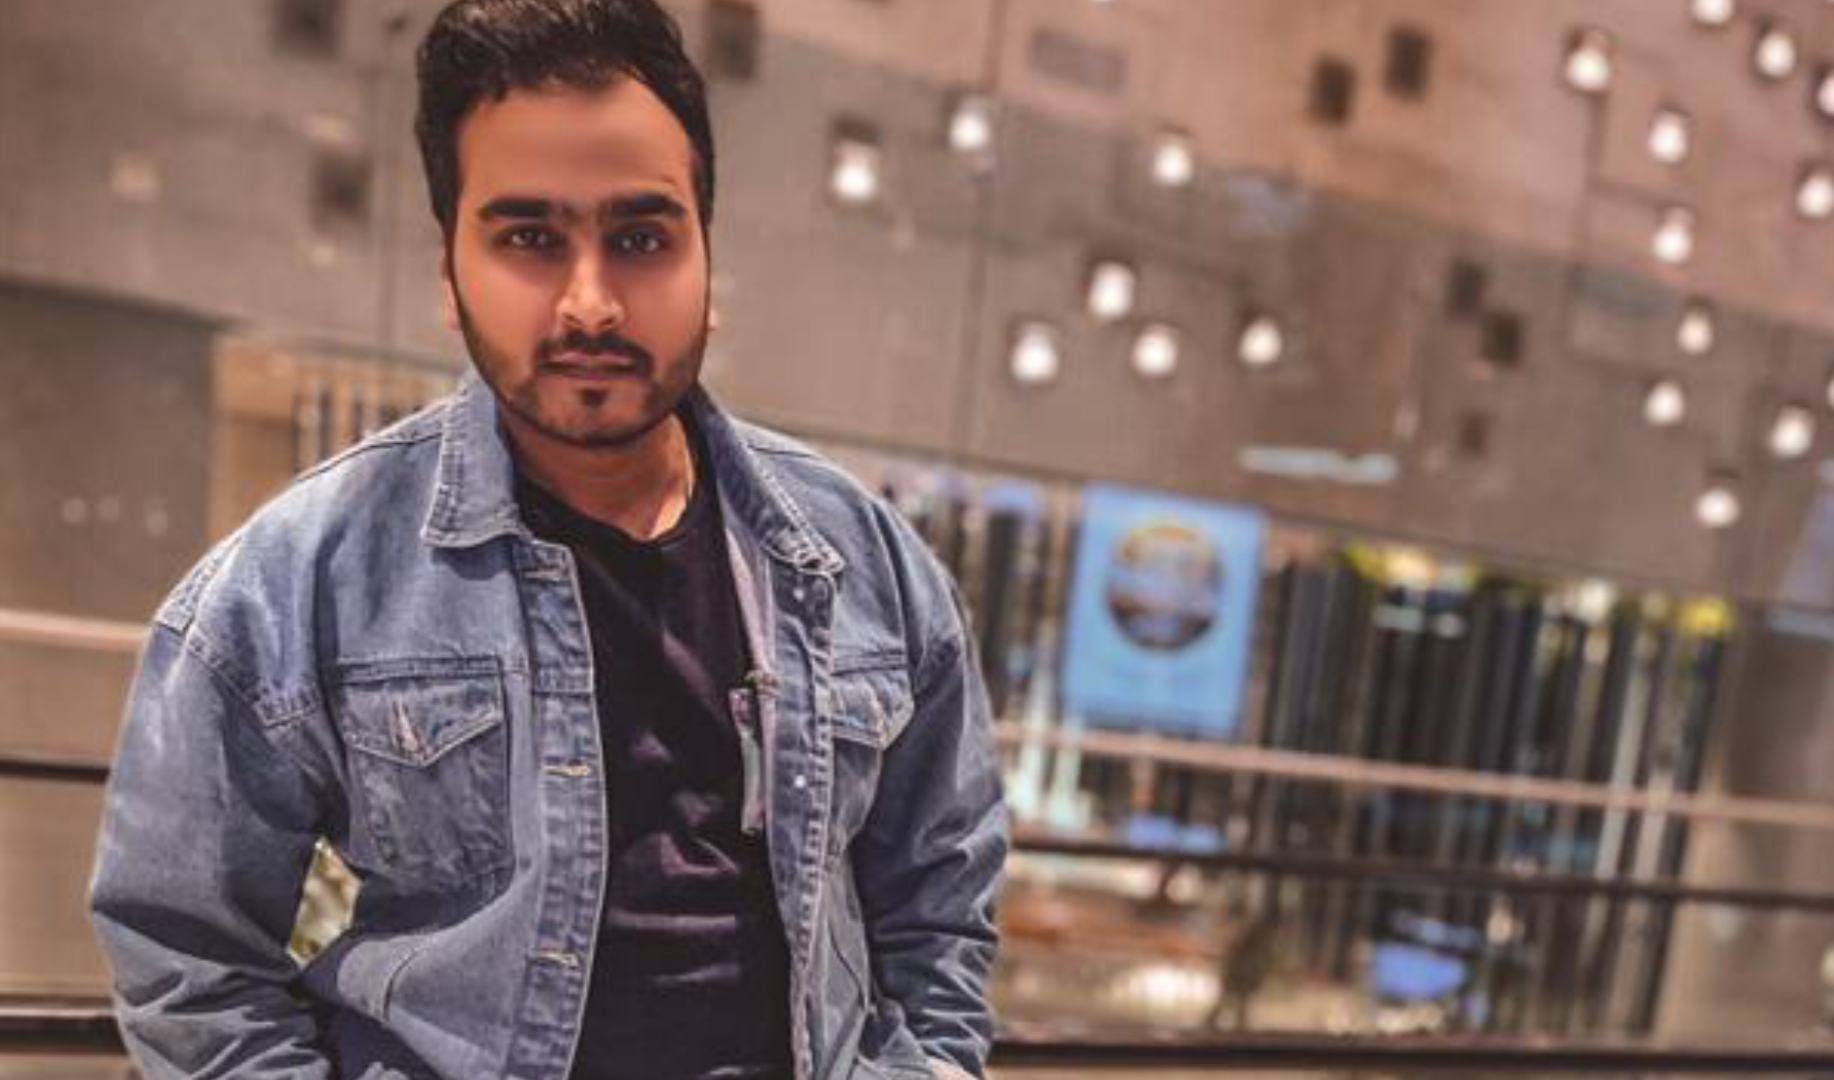 2021 is going to be the year of Indie Music completely, says Bollywood playback singer Nitin Gupta